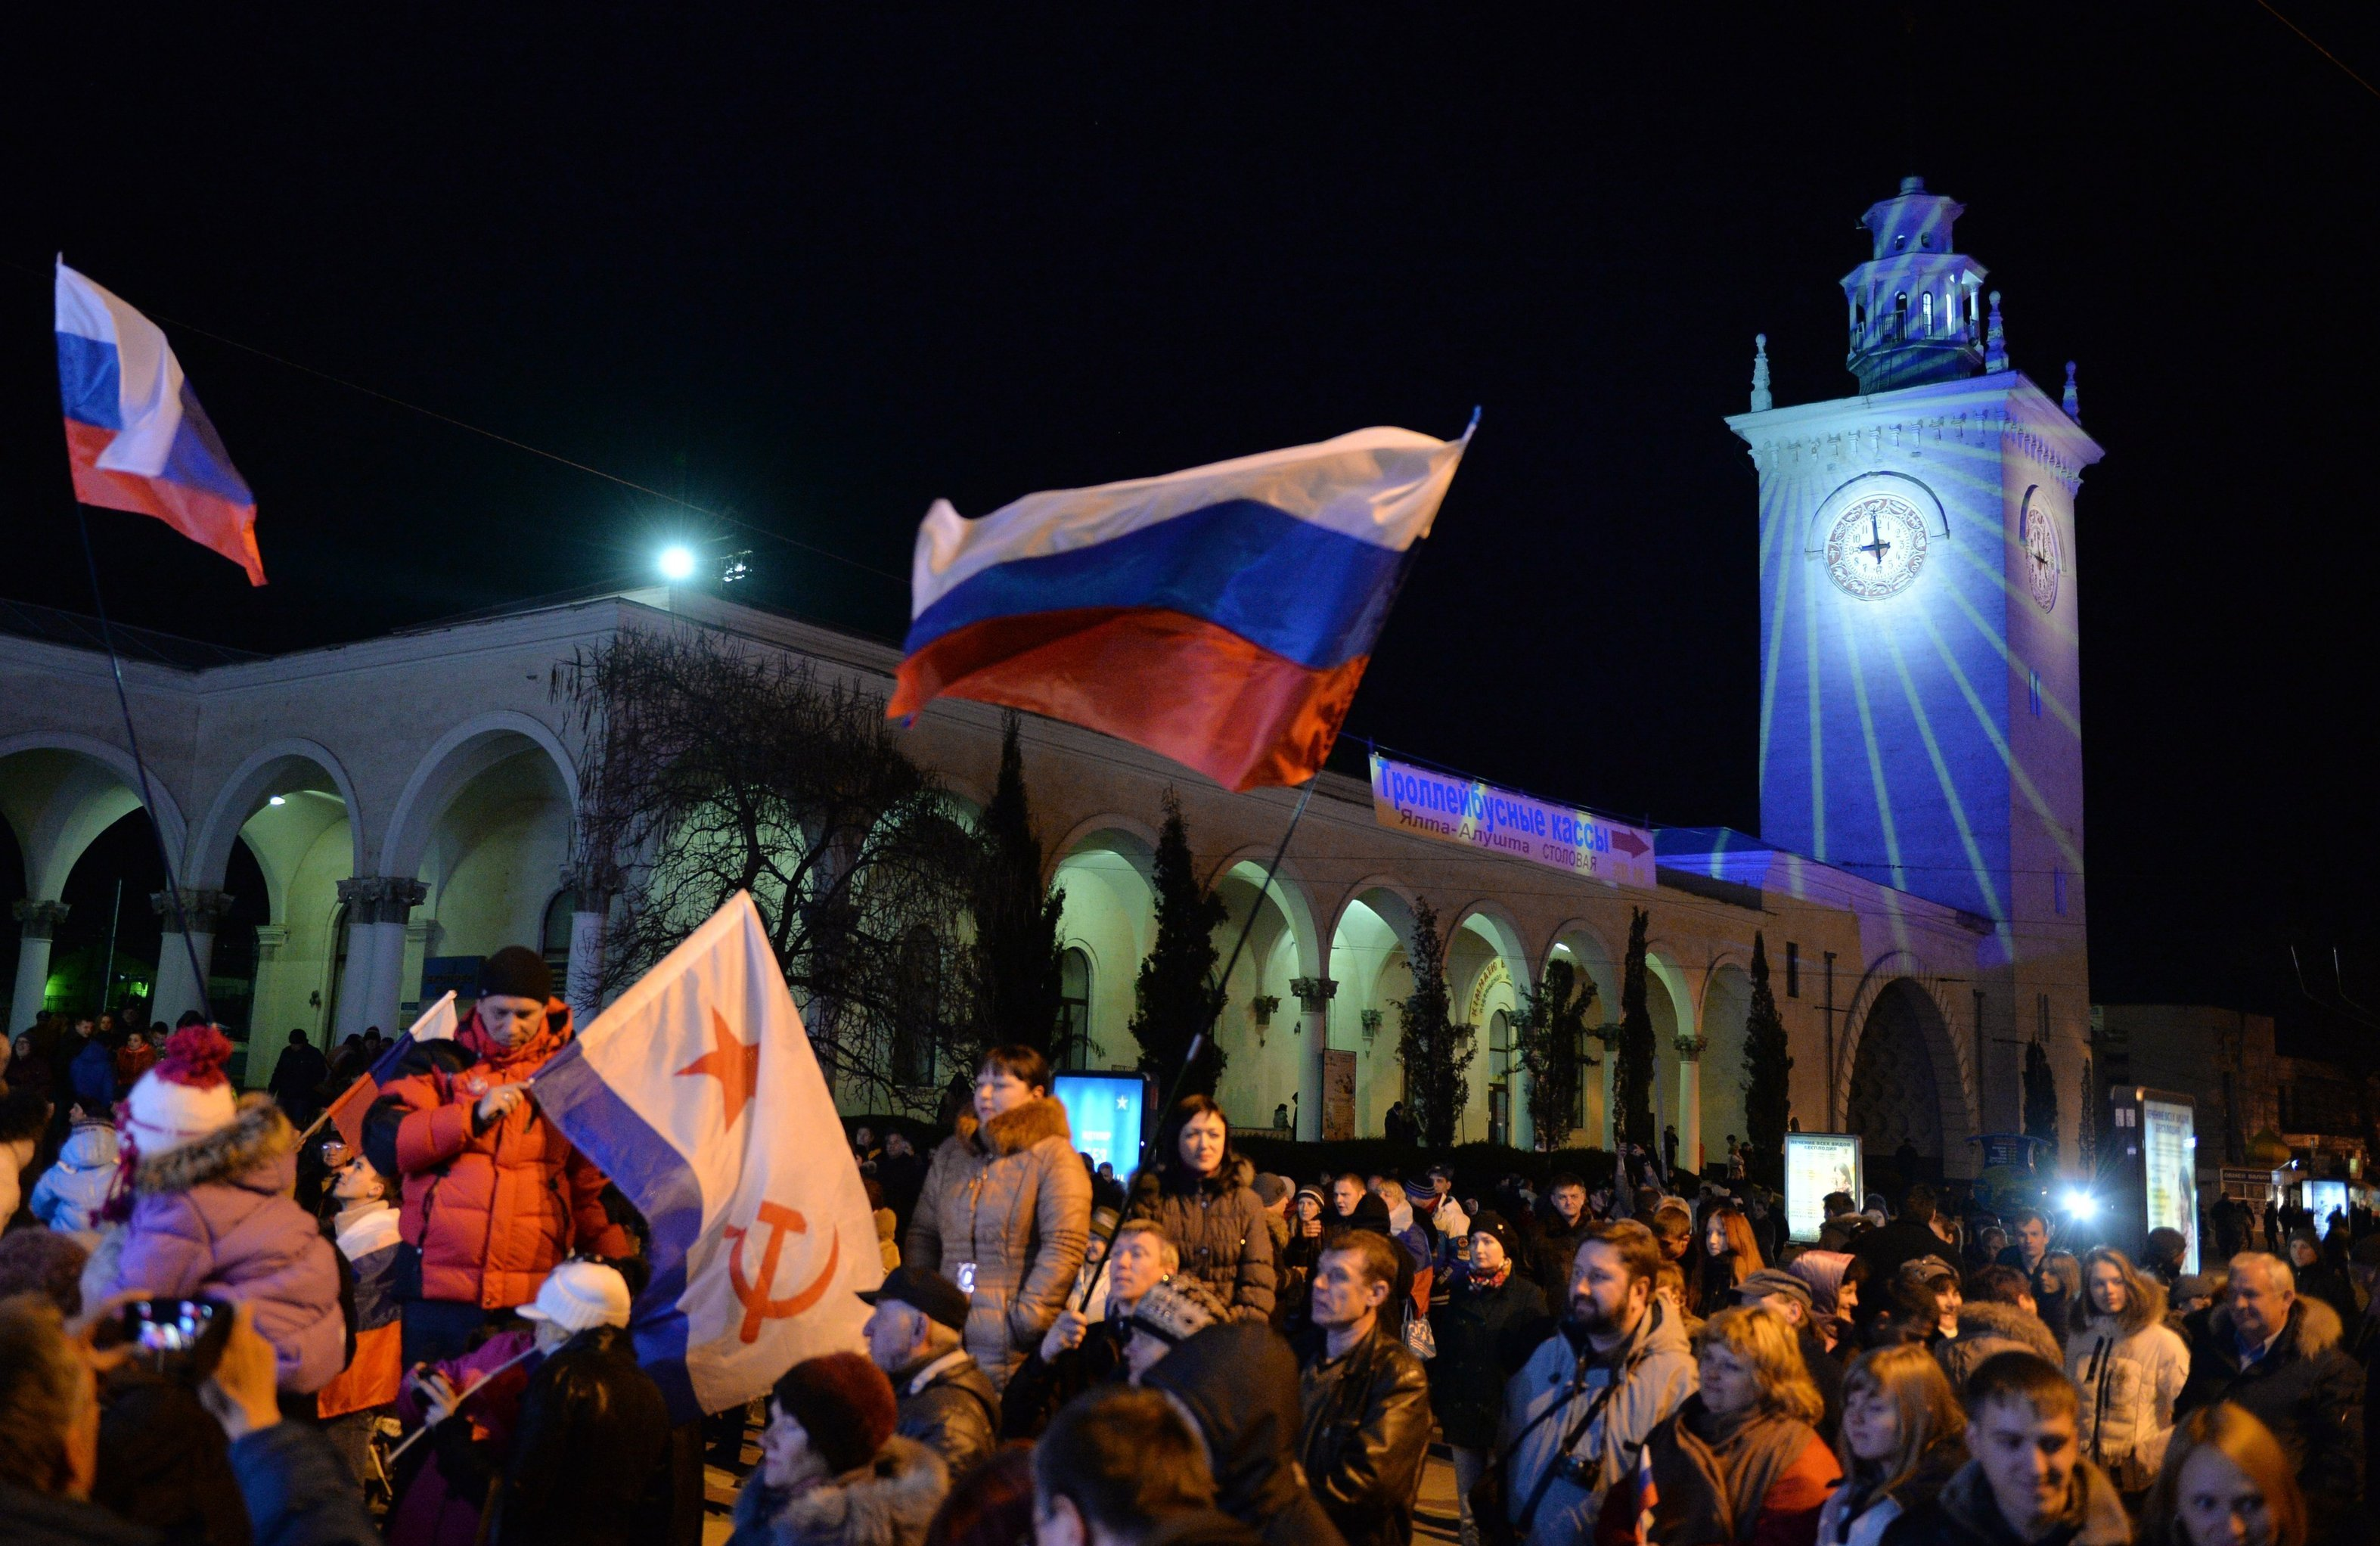 Crimean residents at the railway station in Simferopol marking a holiday as clocks are moved to Moscow time